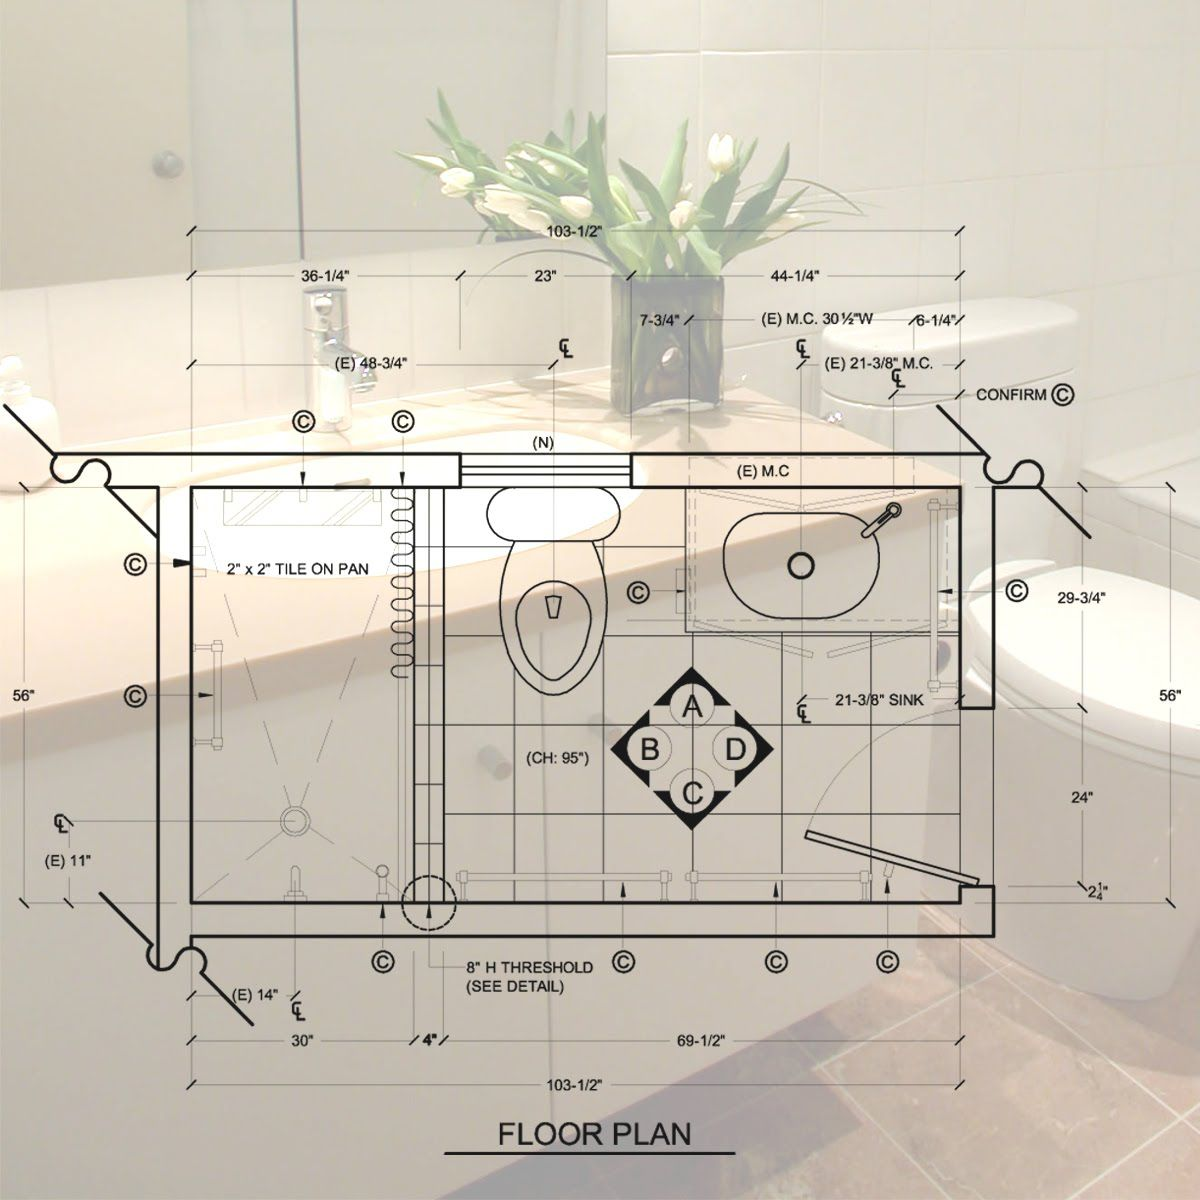 Bathroom drawing design - C L K Design Studio Standard 5 X 8 Bathroom Design Construction Document